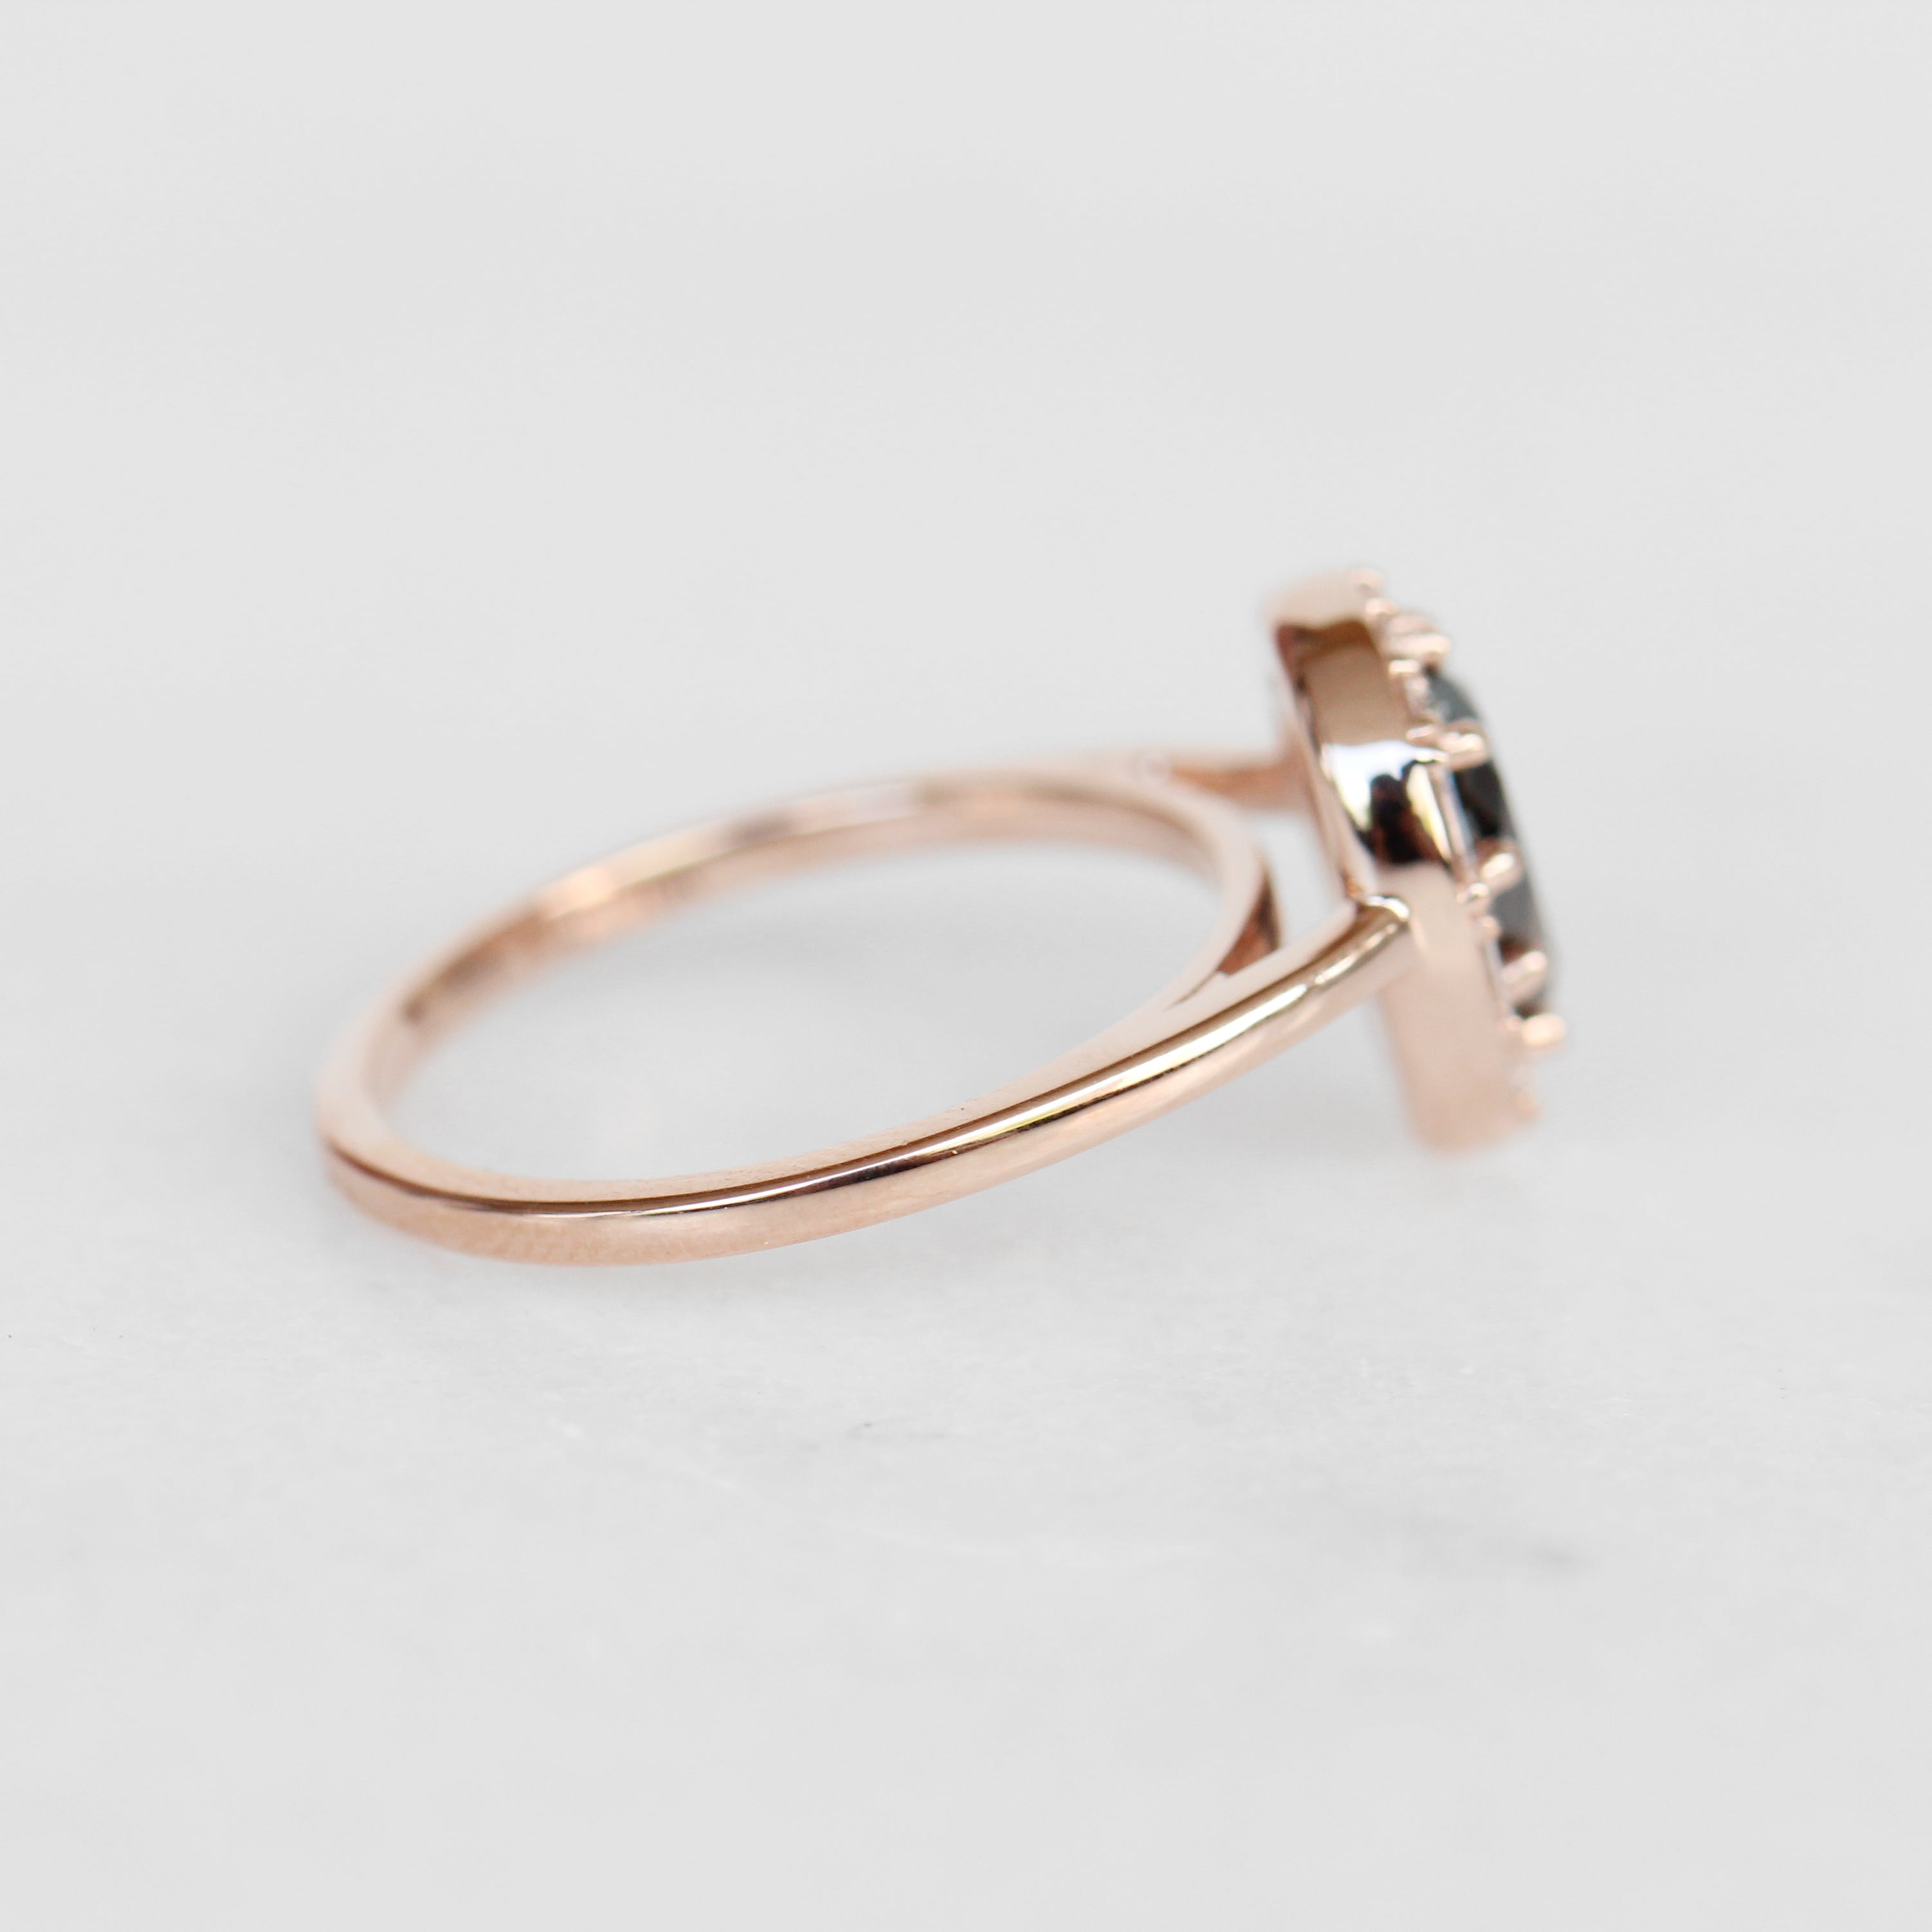 Collins ring with 1.12 carat natural brilliant pear celestial diamond in 10k rose gold - ready to size and ship - Salt & Pepper Celestial Diamond Engagement Rings and Wedding Bands  by Midwinter Co.